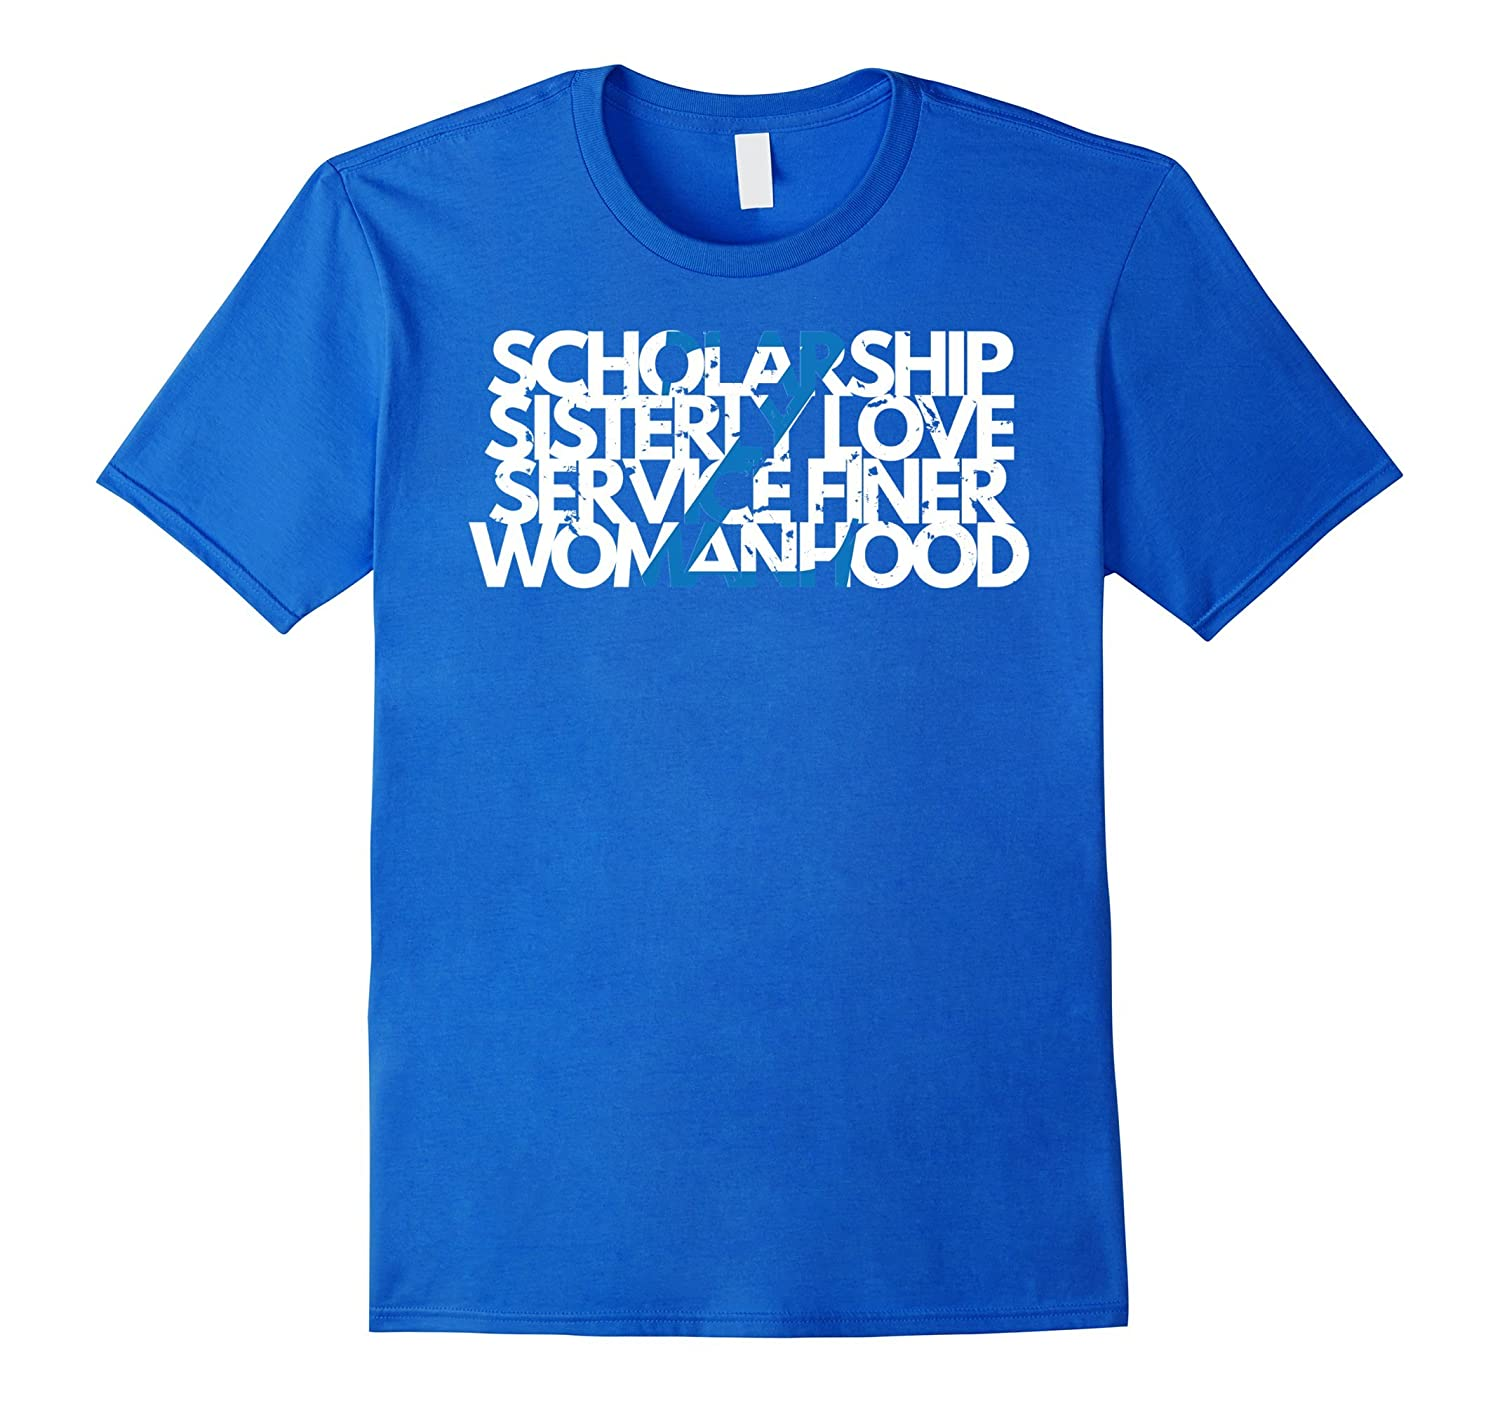 Zeta Z Phi 1920 - Principles Shirt Scholarship Sisterly Love-TH